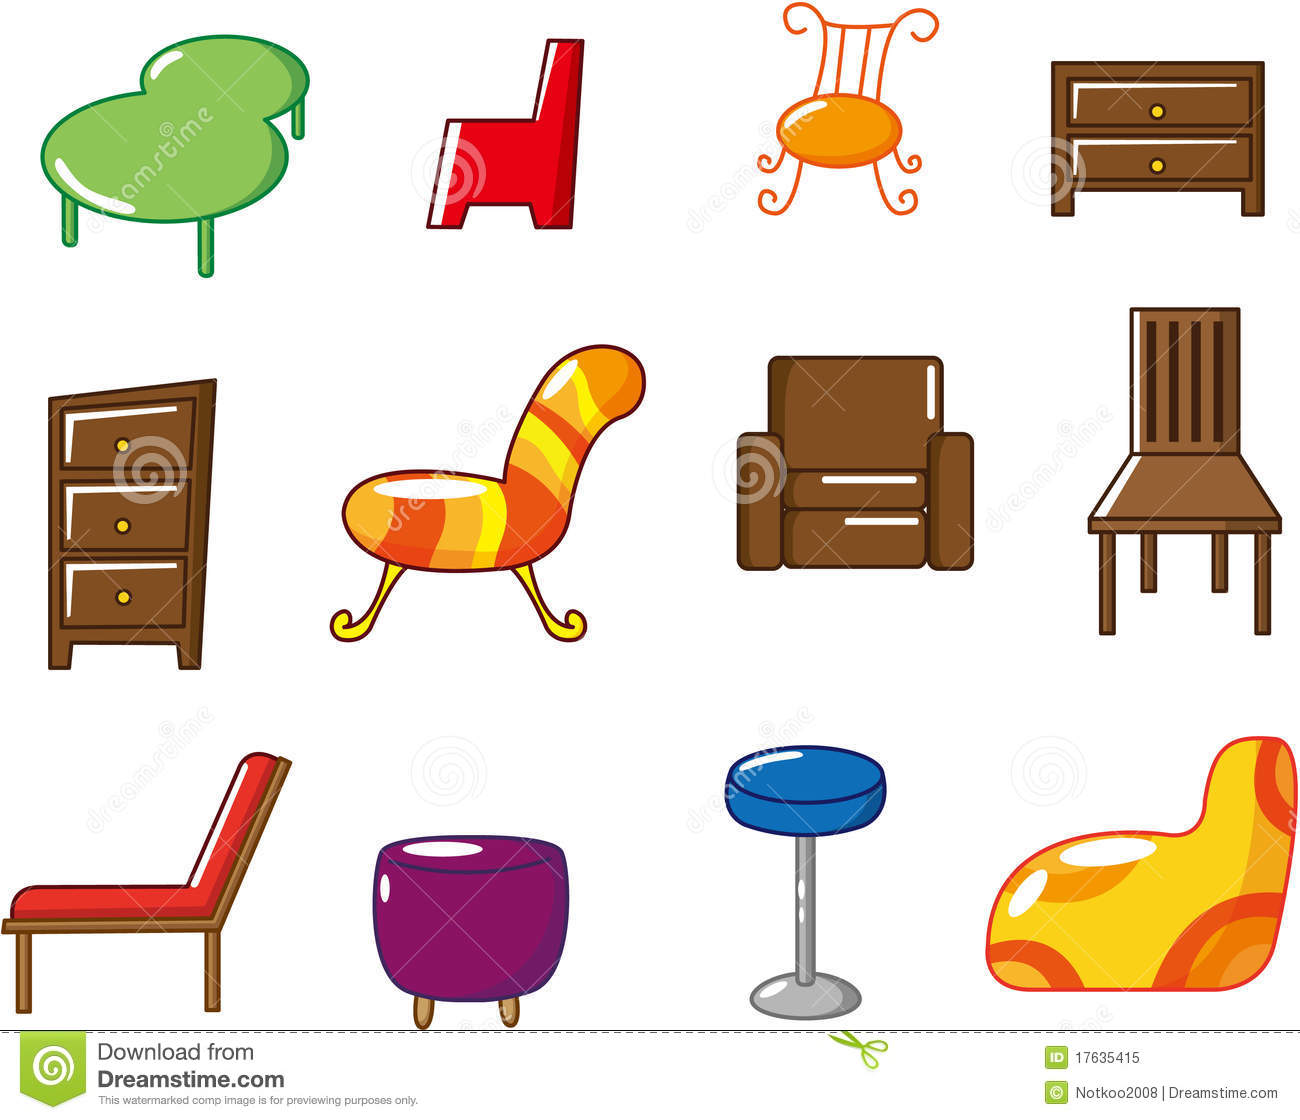 Cartoon Furniture Icon Royalty Free Stock Photo - Image: 17635415